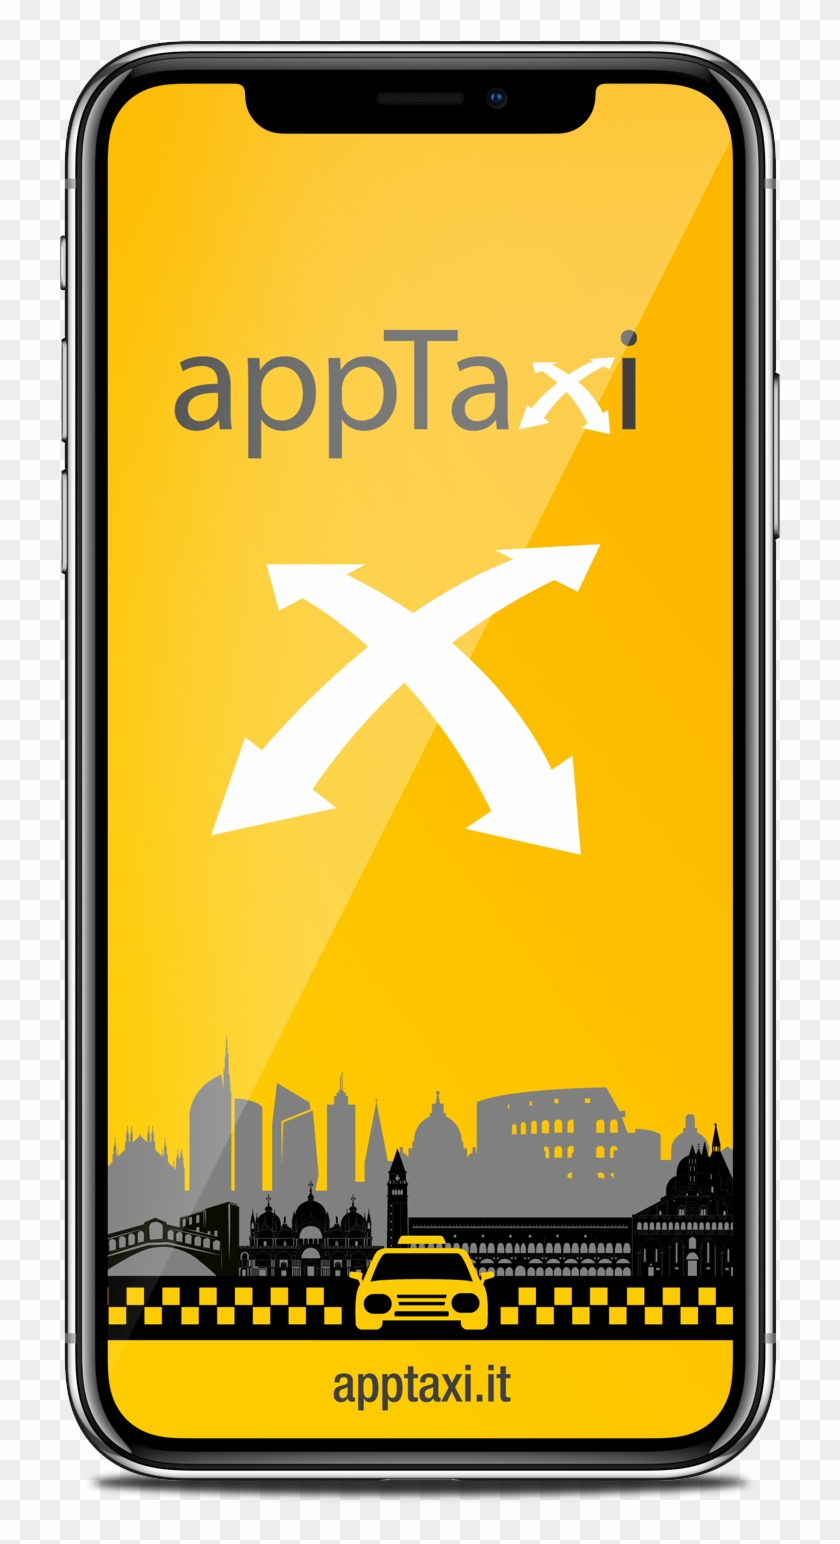 Donwload Our App - Iphone X 128 Price In India Clipart #2242362